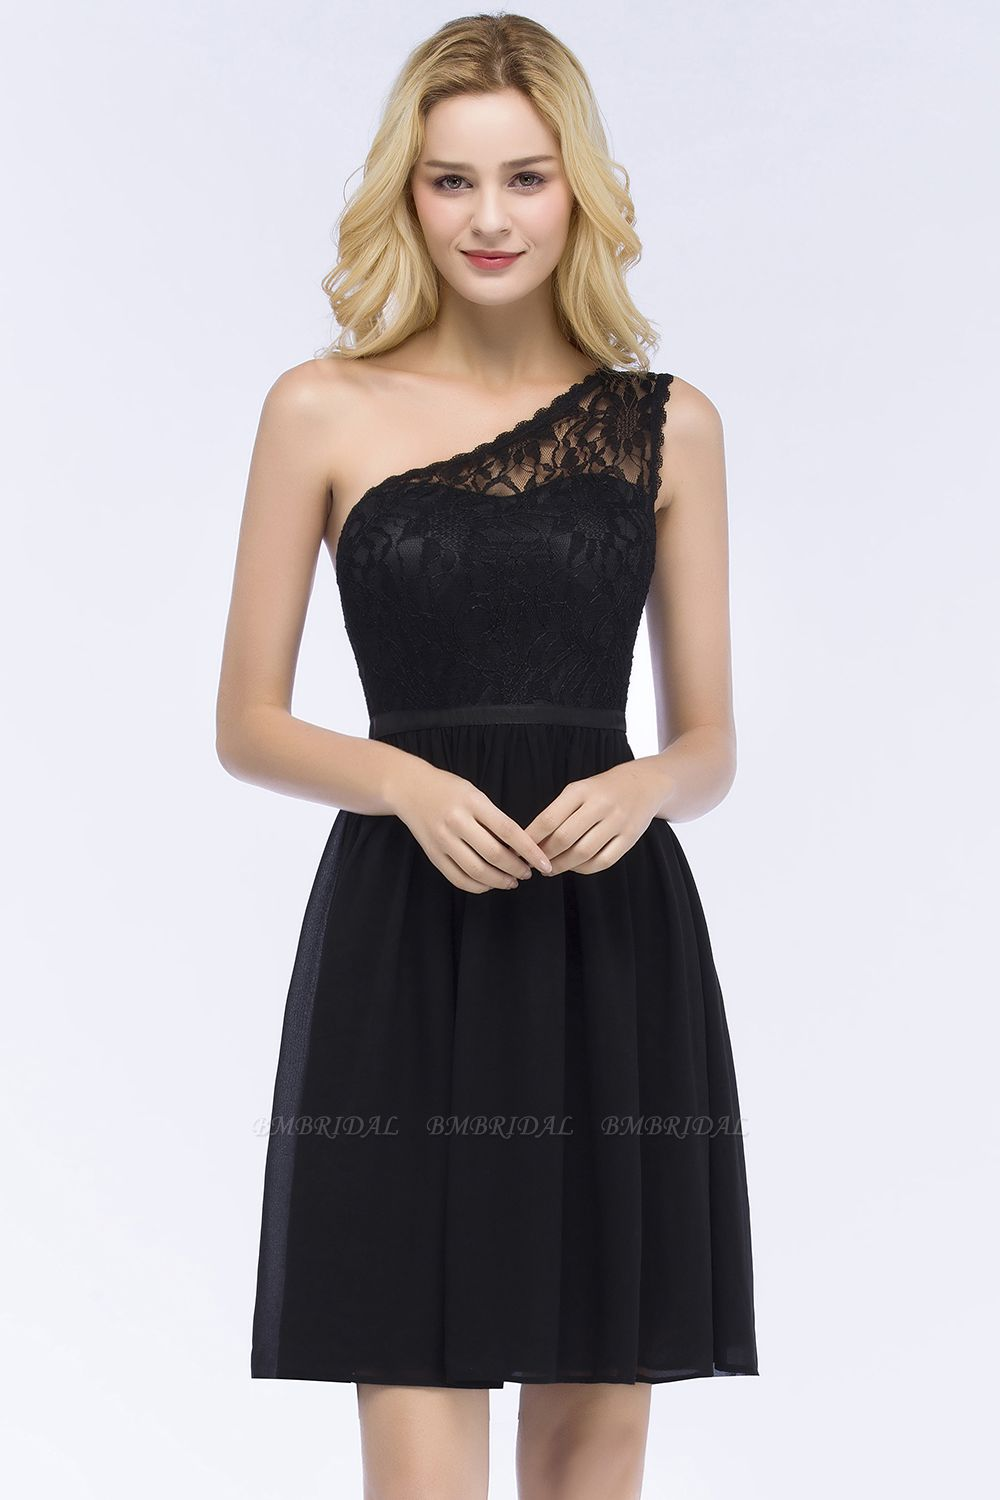 Lovely Lace Black One-shoulder Short Junior Bridesmaid Dresses Online